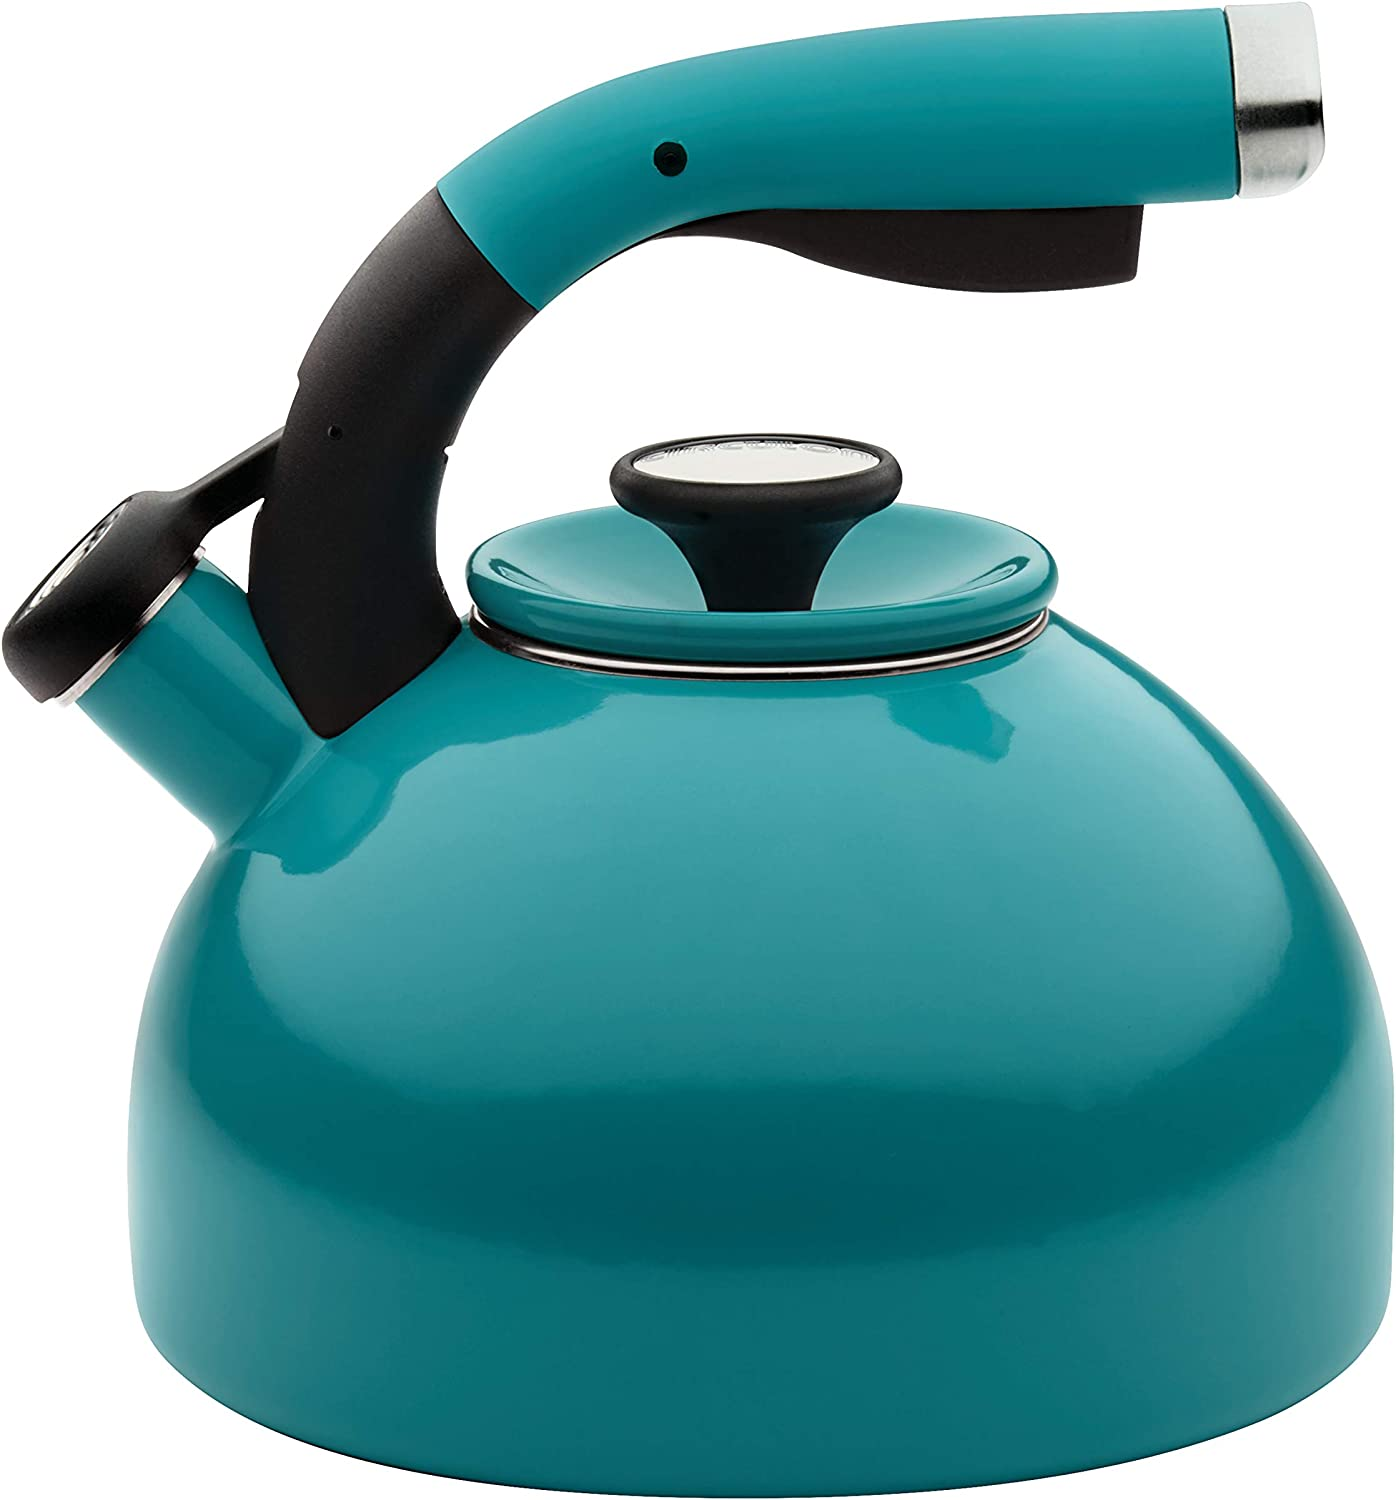 Circulon Morning Bird Whistling Kettle/Stovetop Teakettle